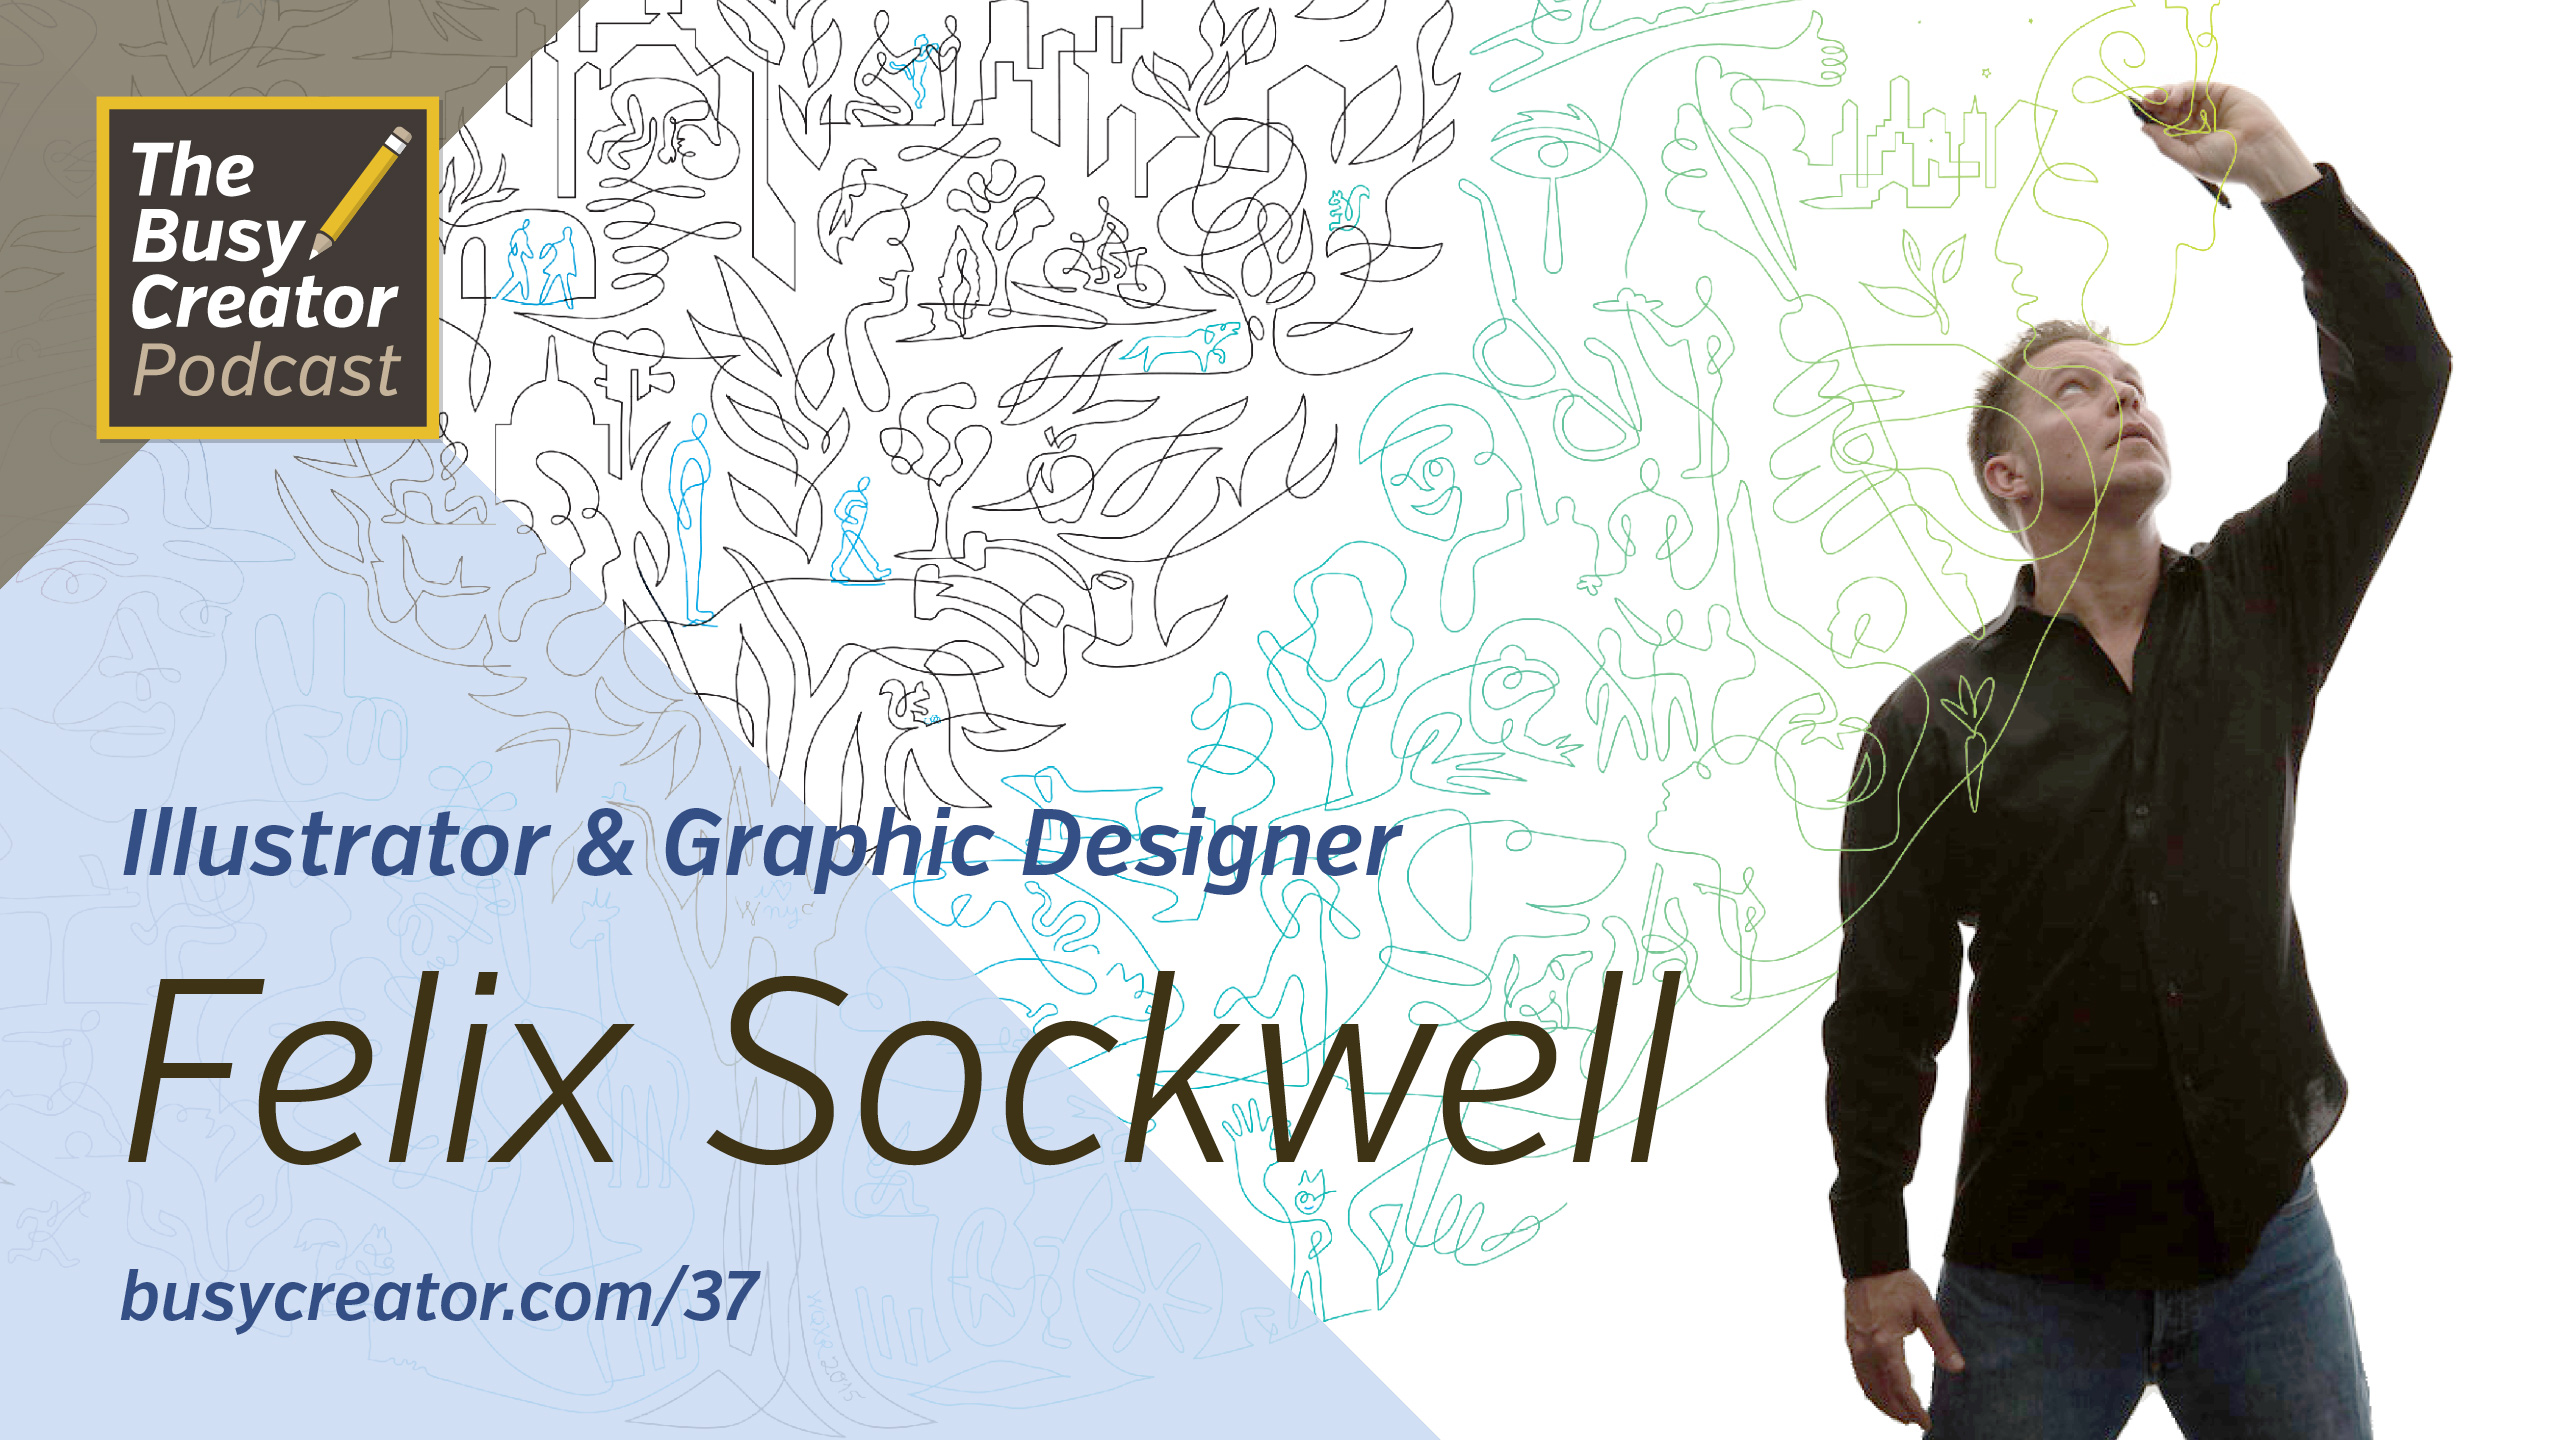 Illustrator & Graphic Designer Felix Sockwell Shares Career Journeys and Productivity Habits